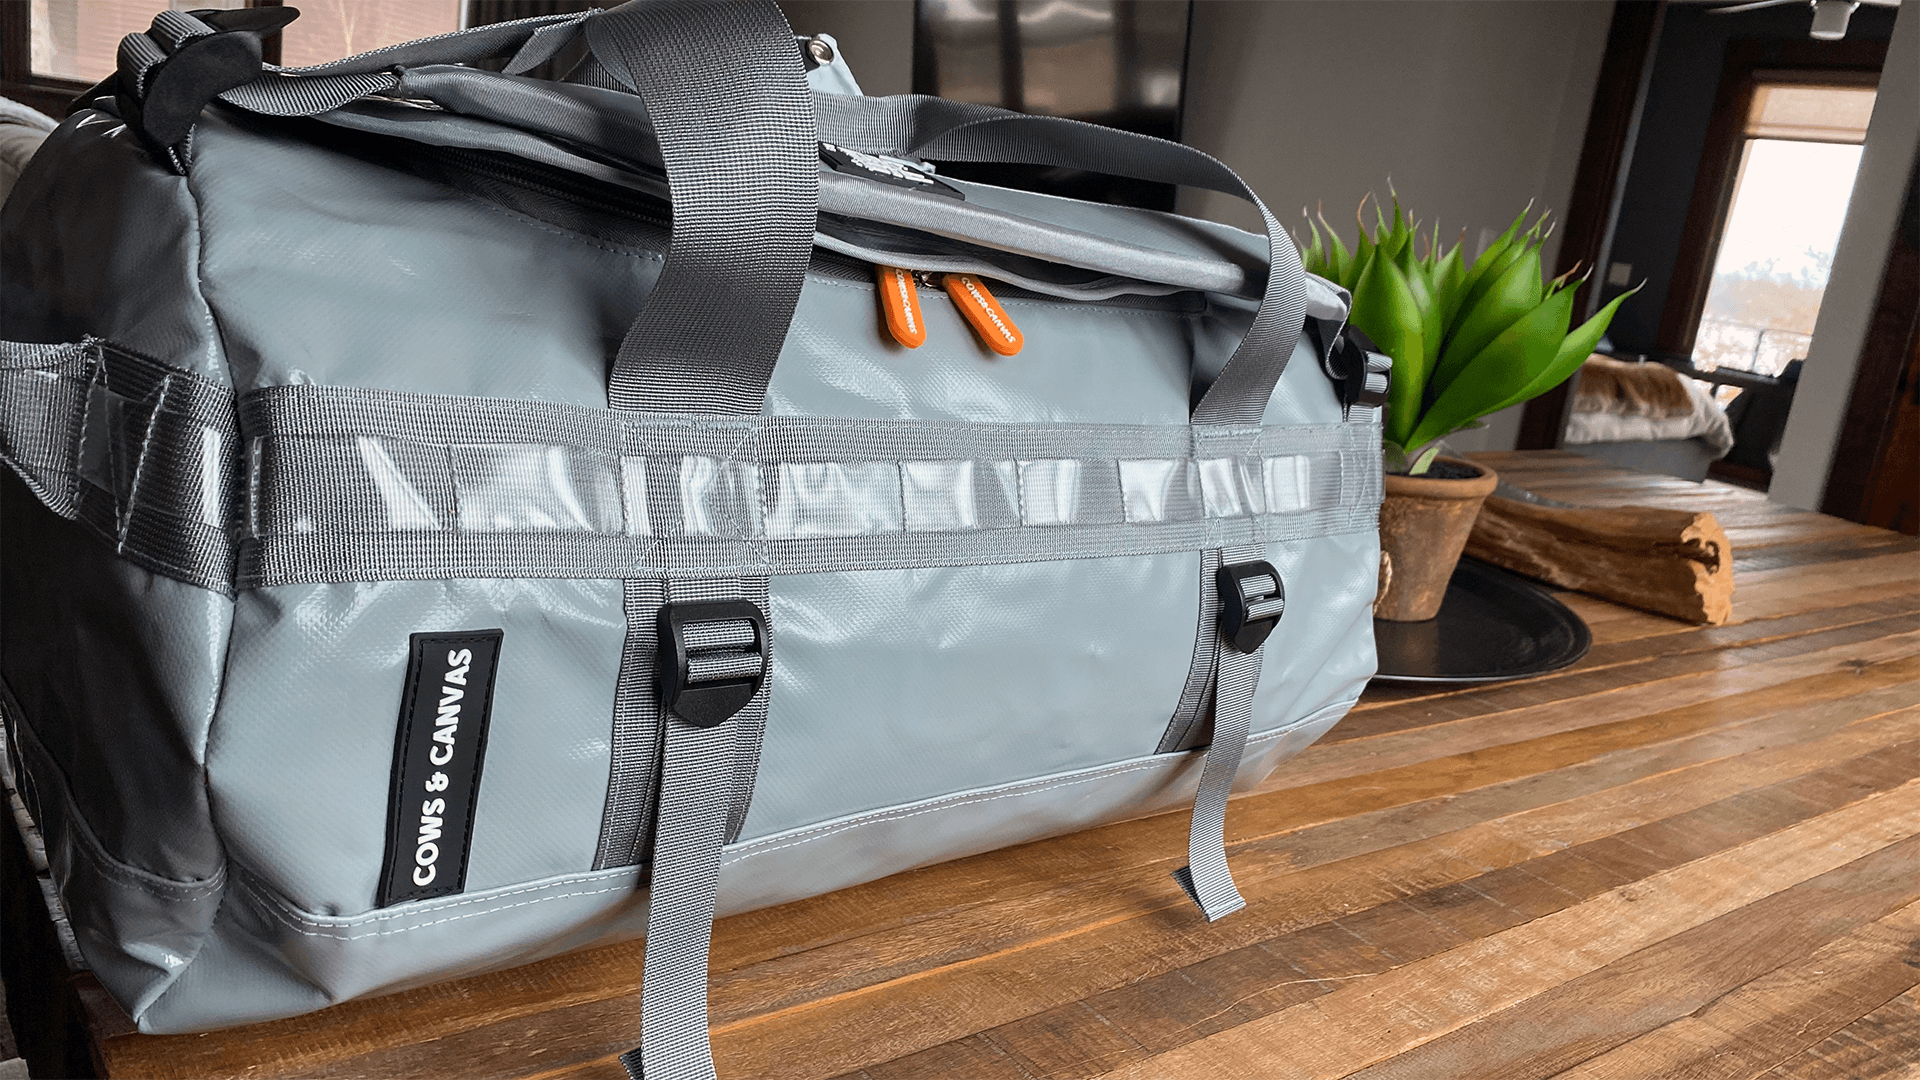 Grey Waterproof Duffle Bag With Orange Zippers Laying On Wooden Table